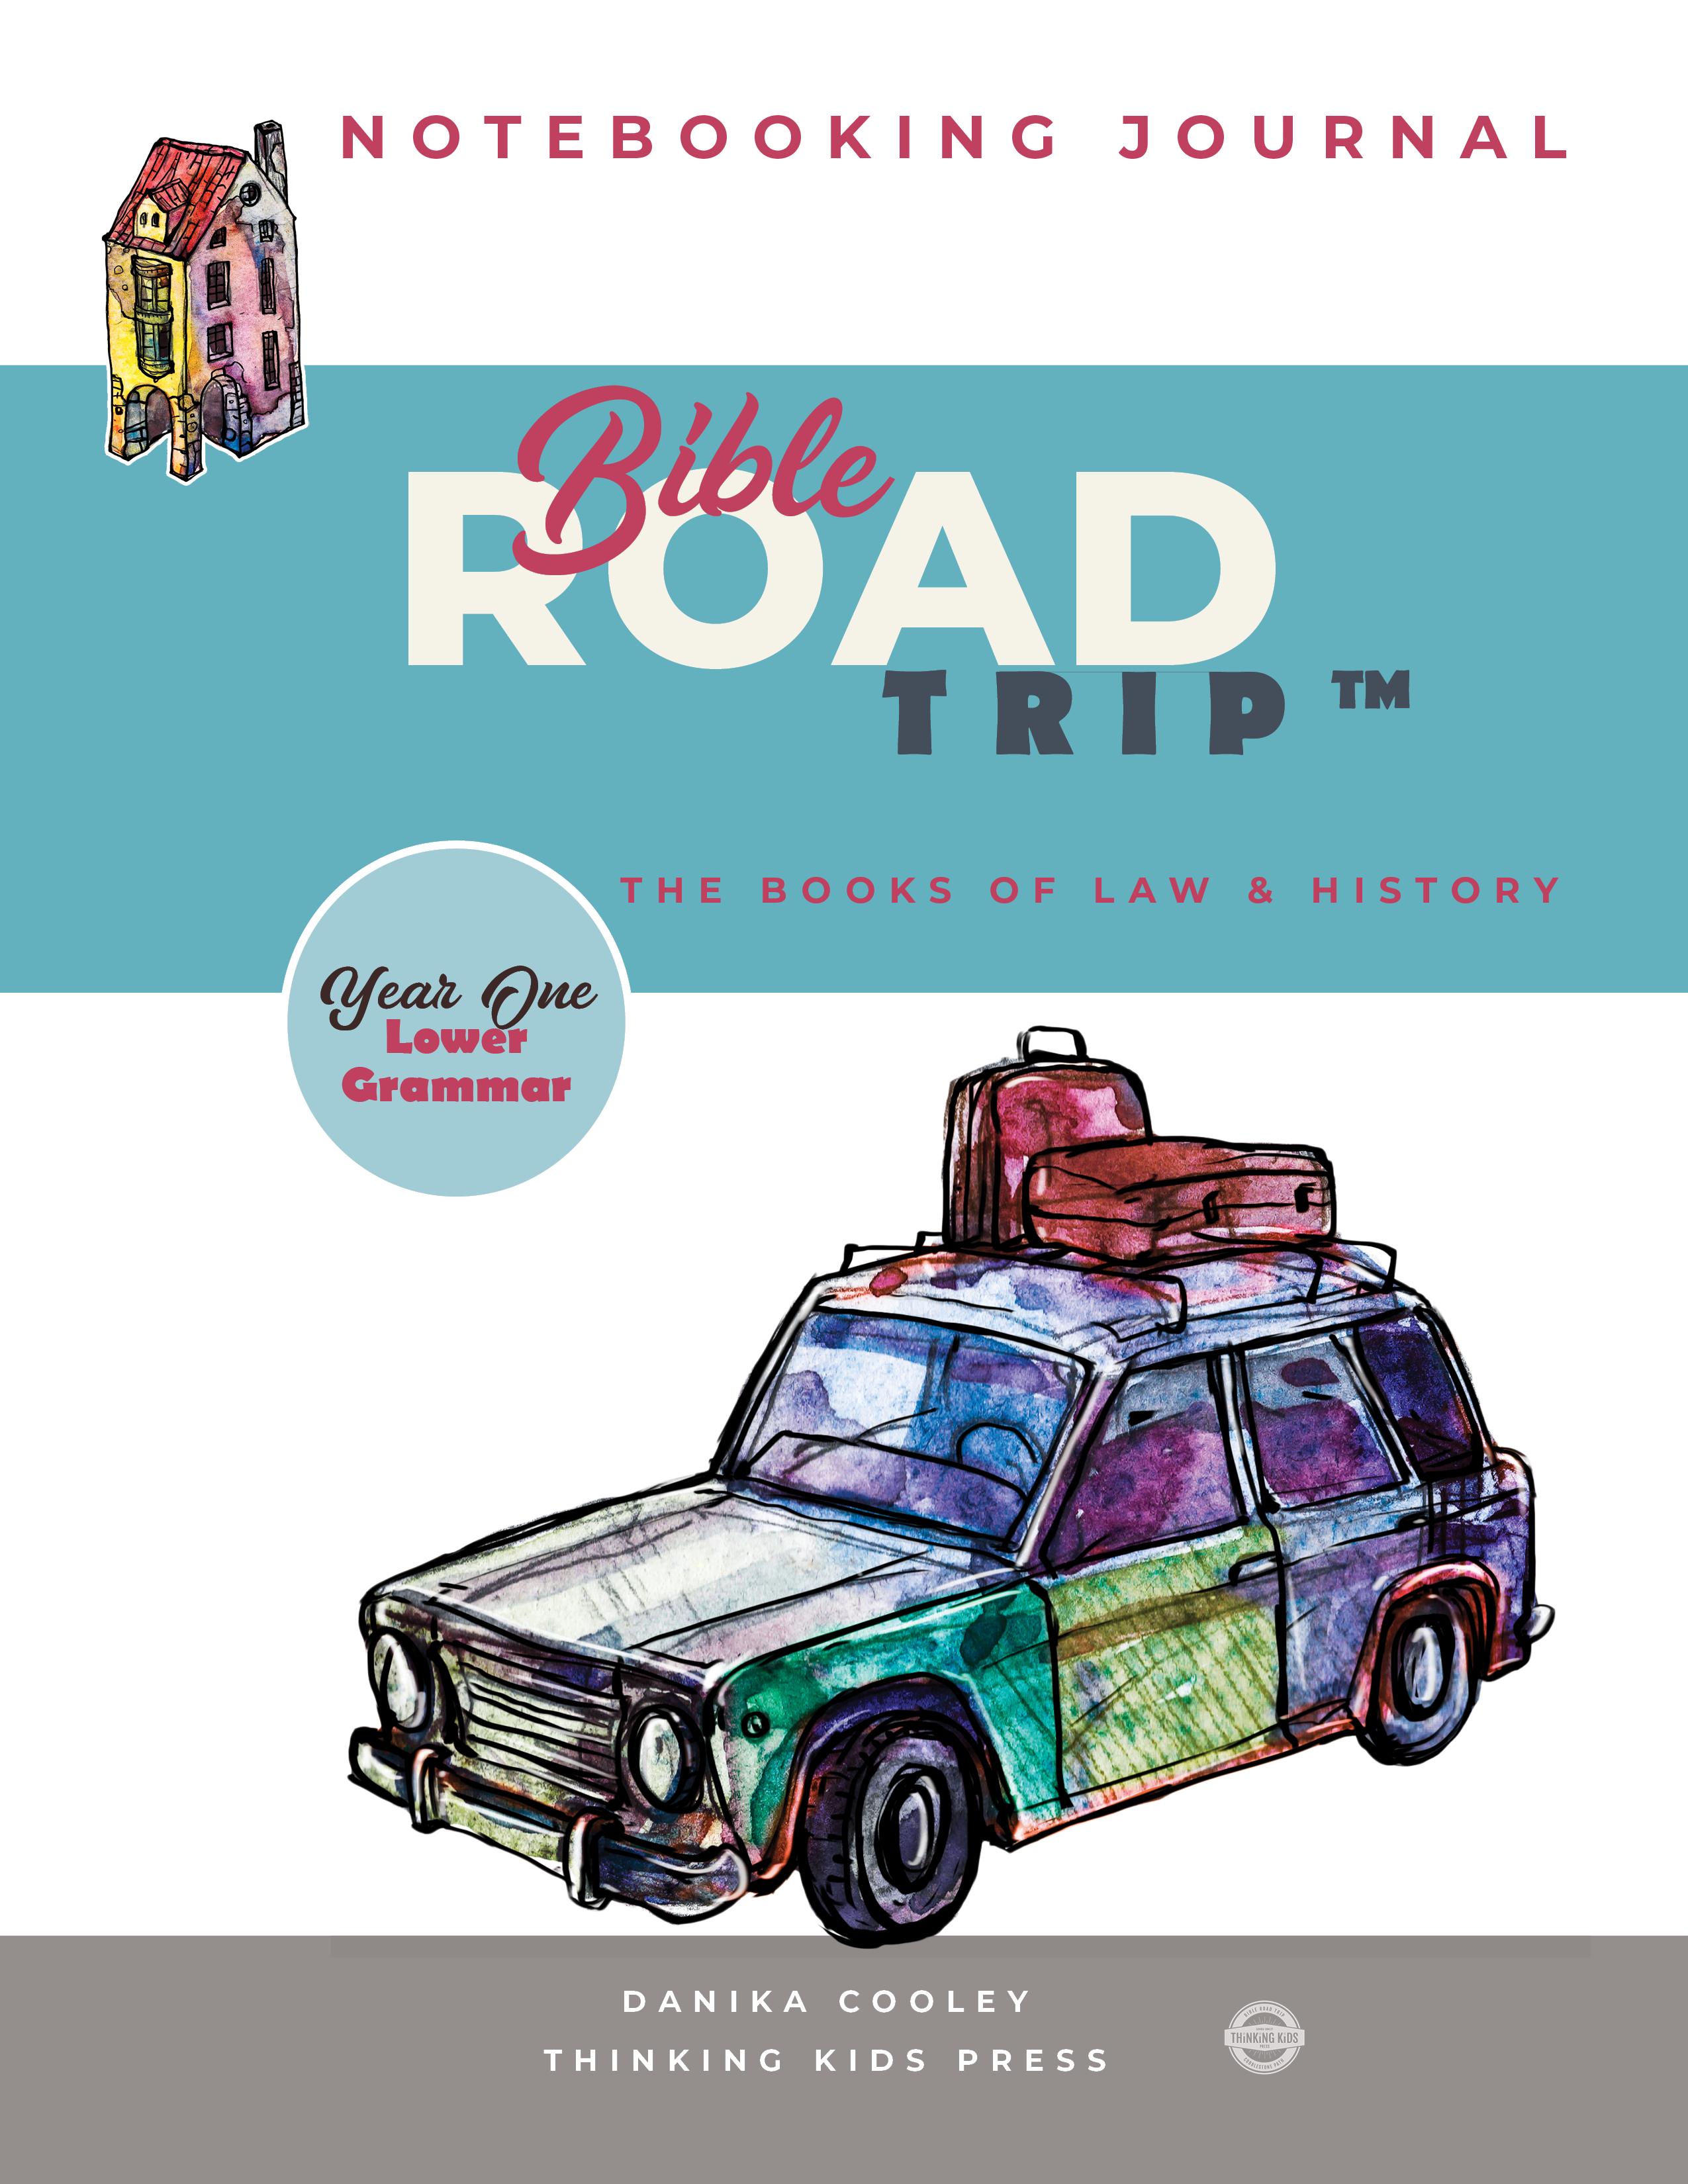 Bible Road Trip™ Year One Notebooking Journal Lower Grammar